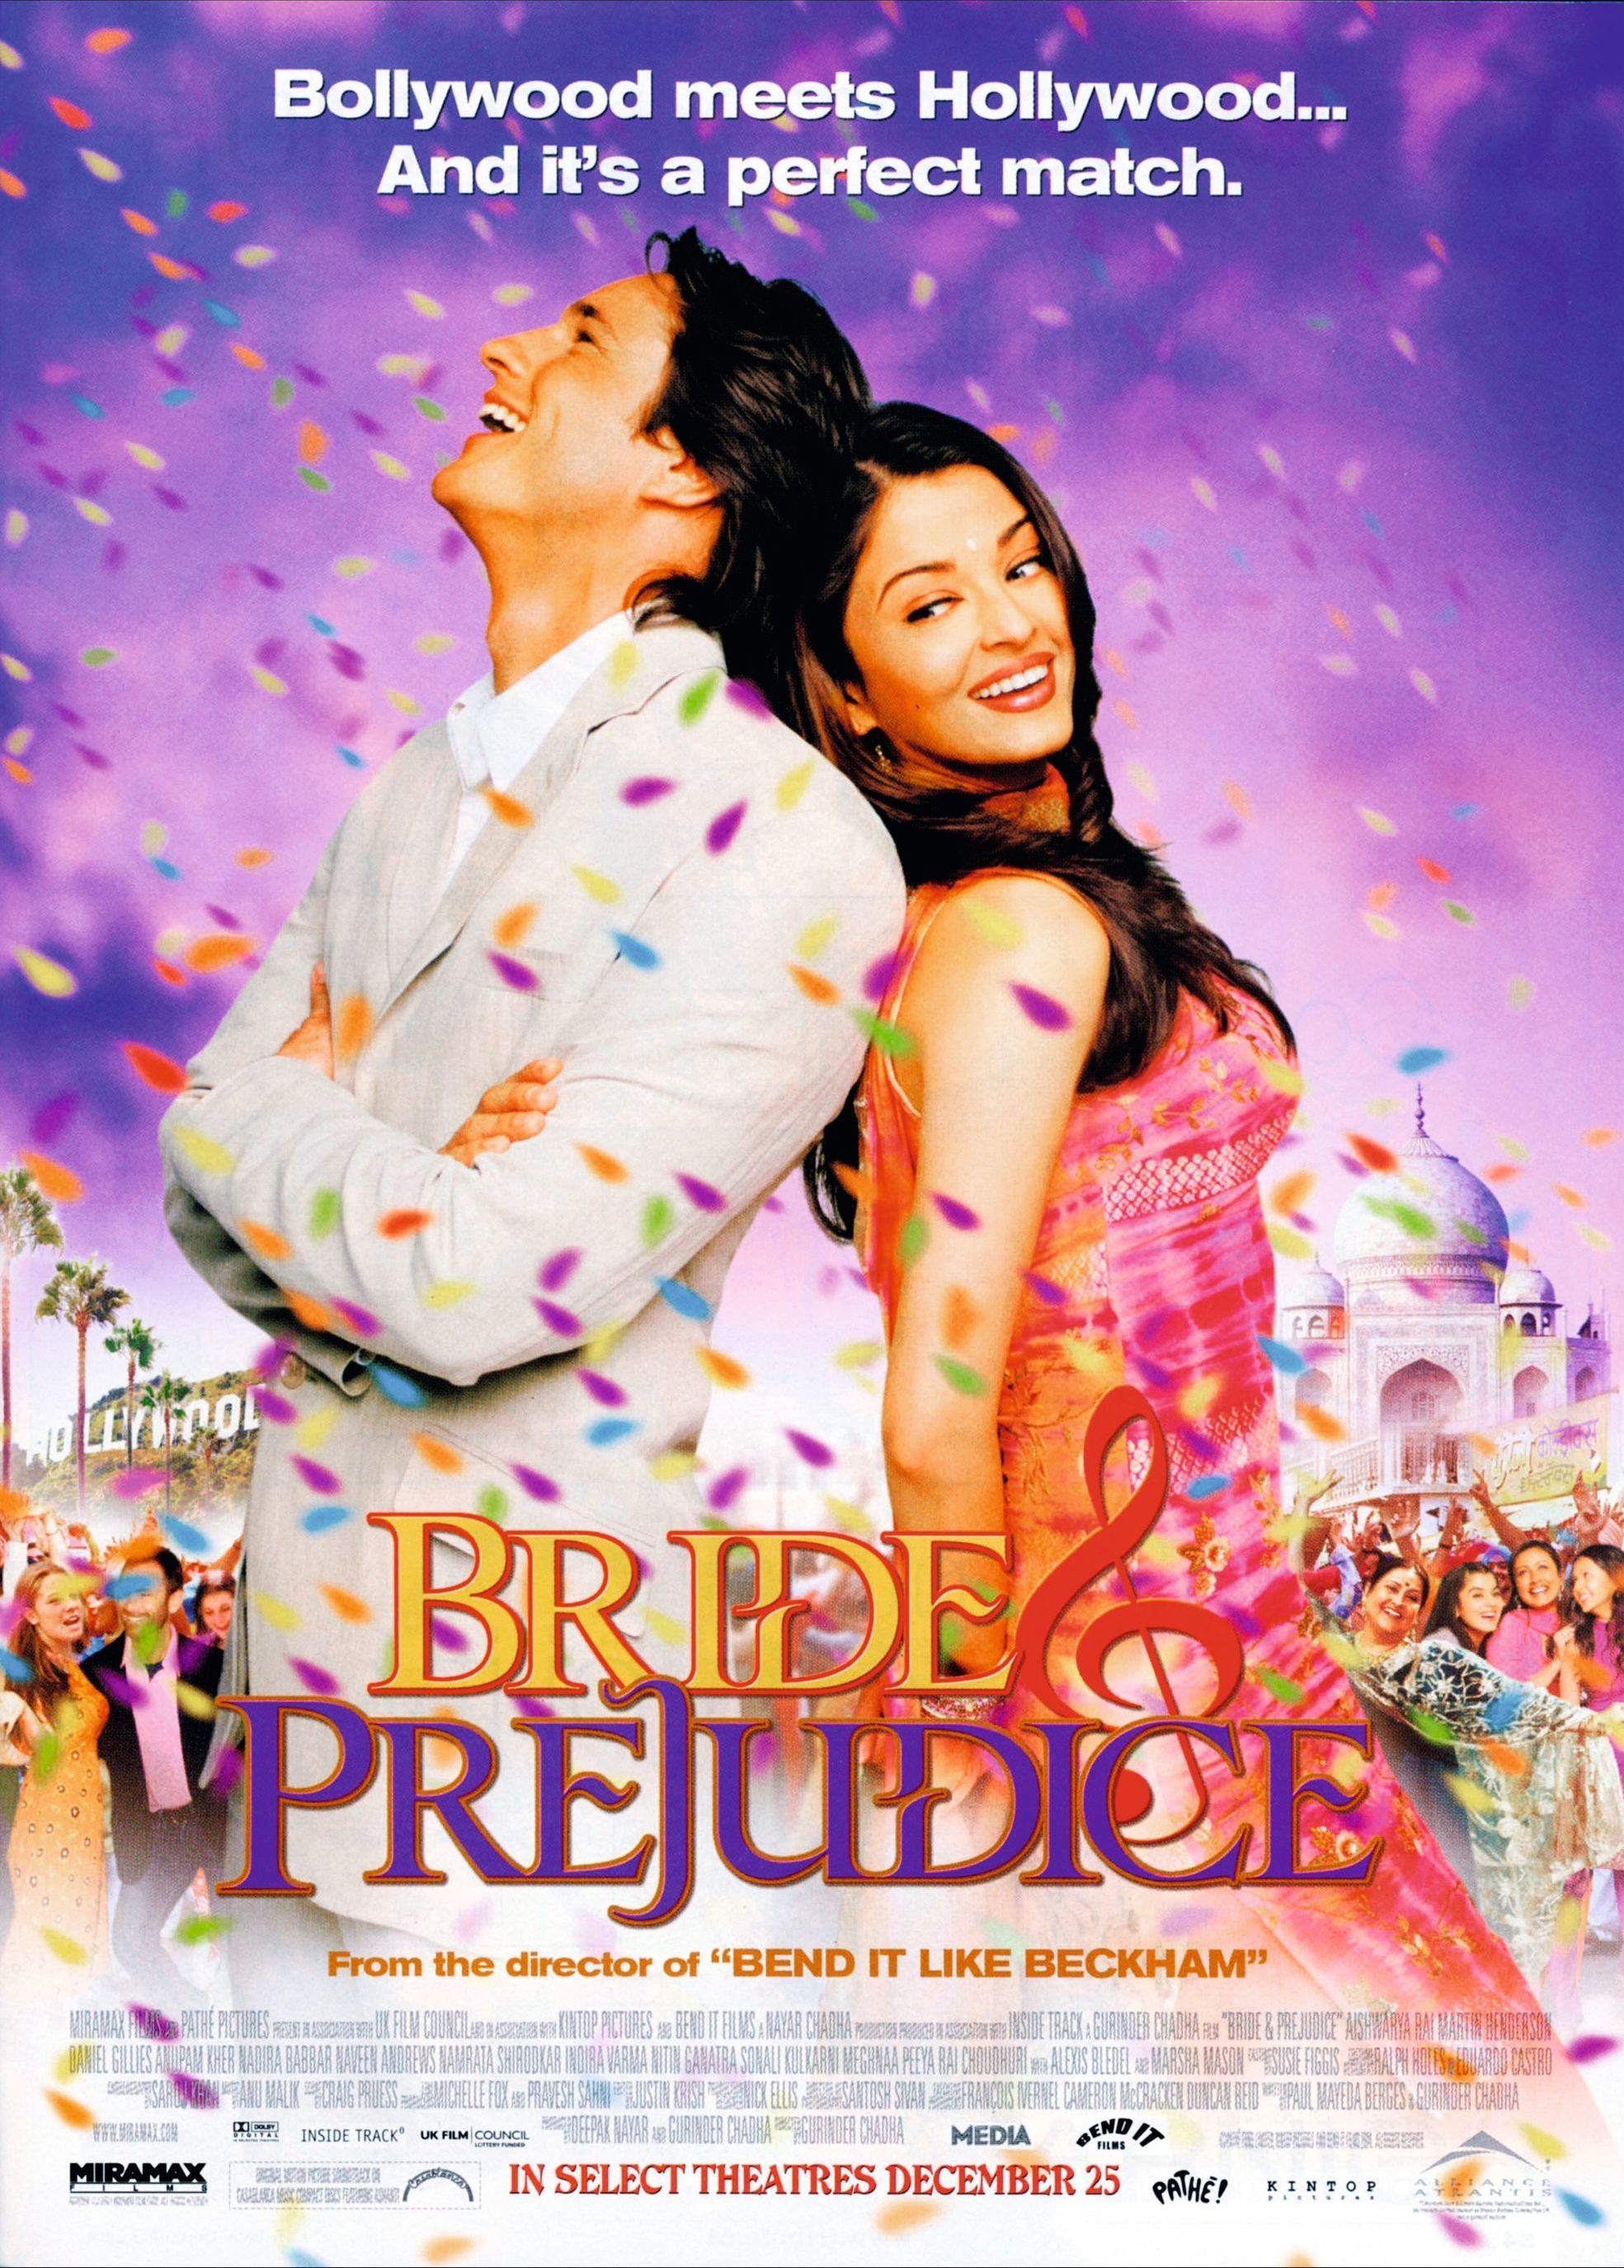 Bride & Prejudice, by Gurinder Chadha, 2004